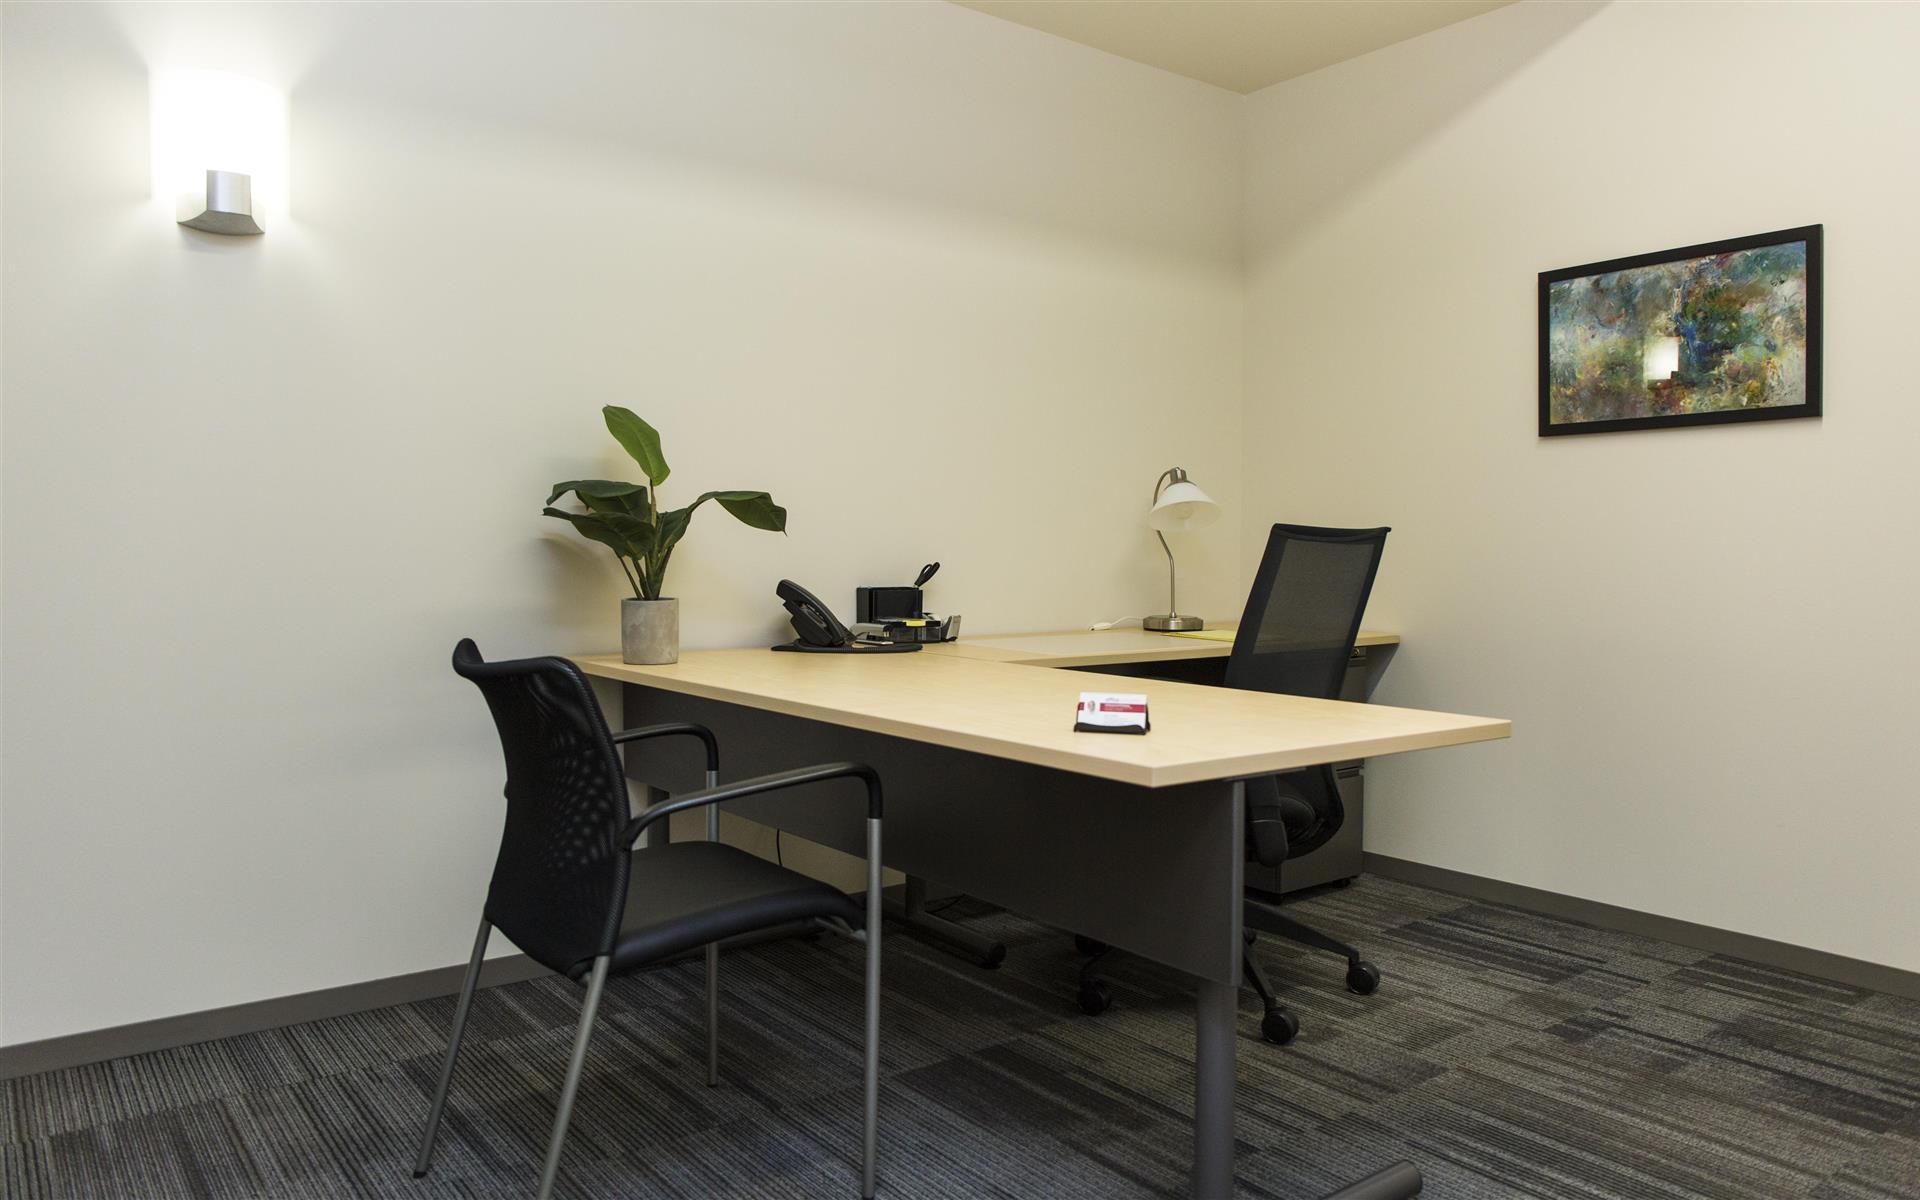 Office Evolution - Salt Lake City/Holladay - Interior Executive Office